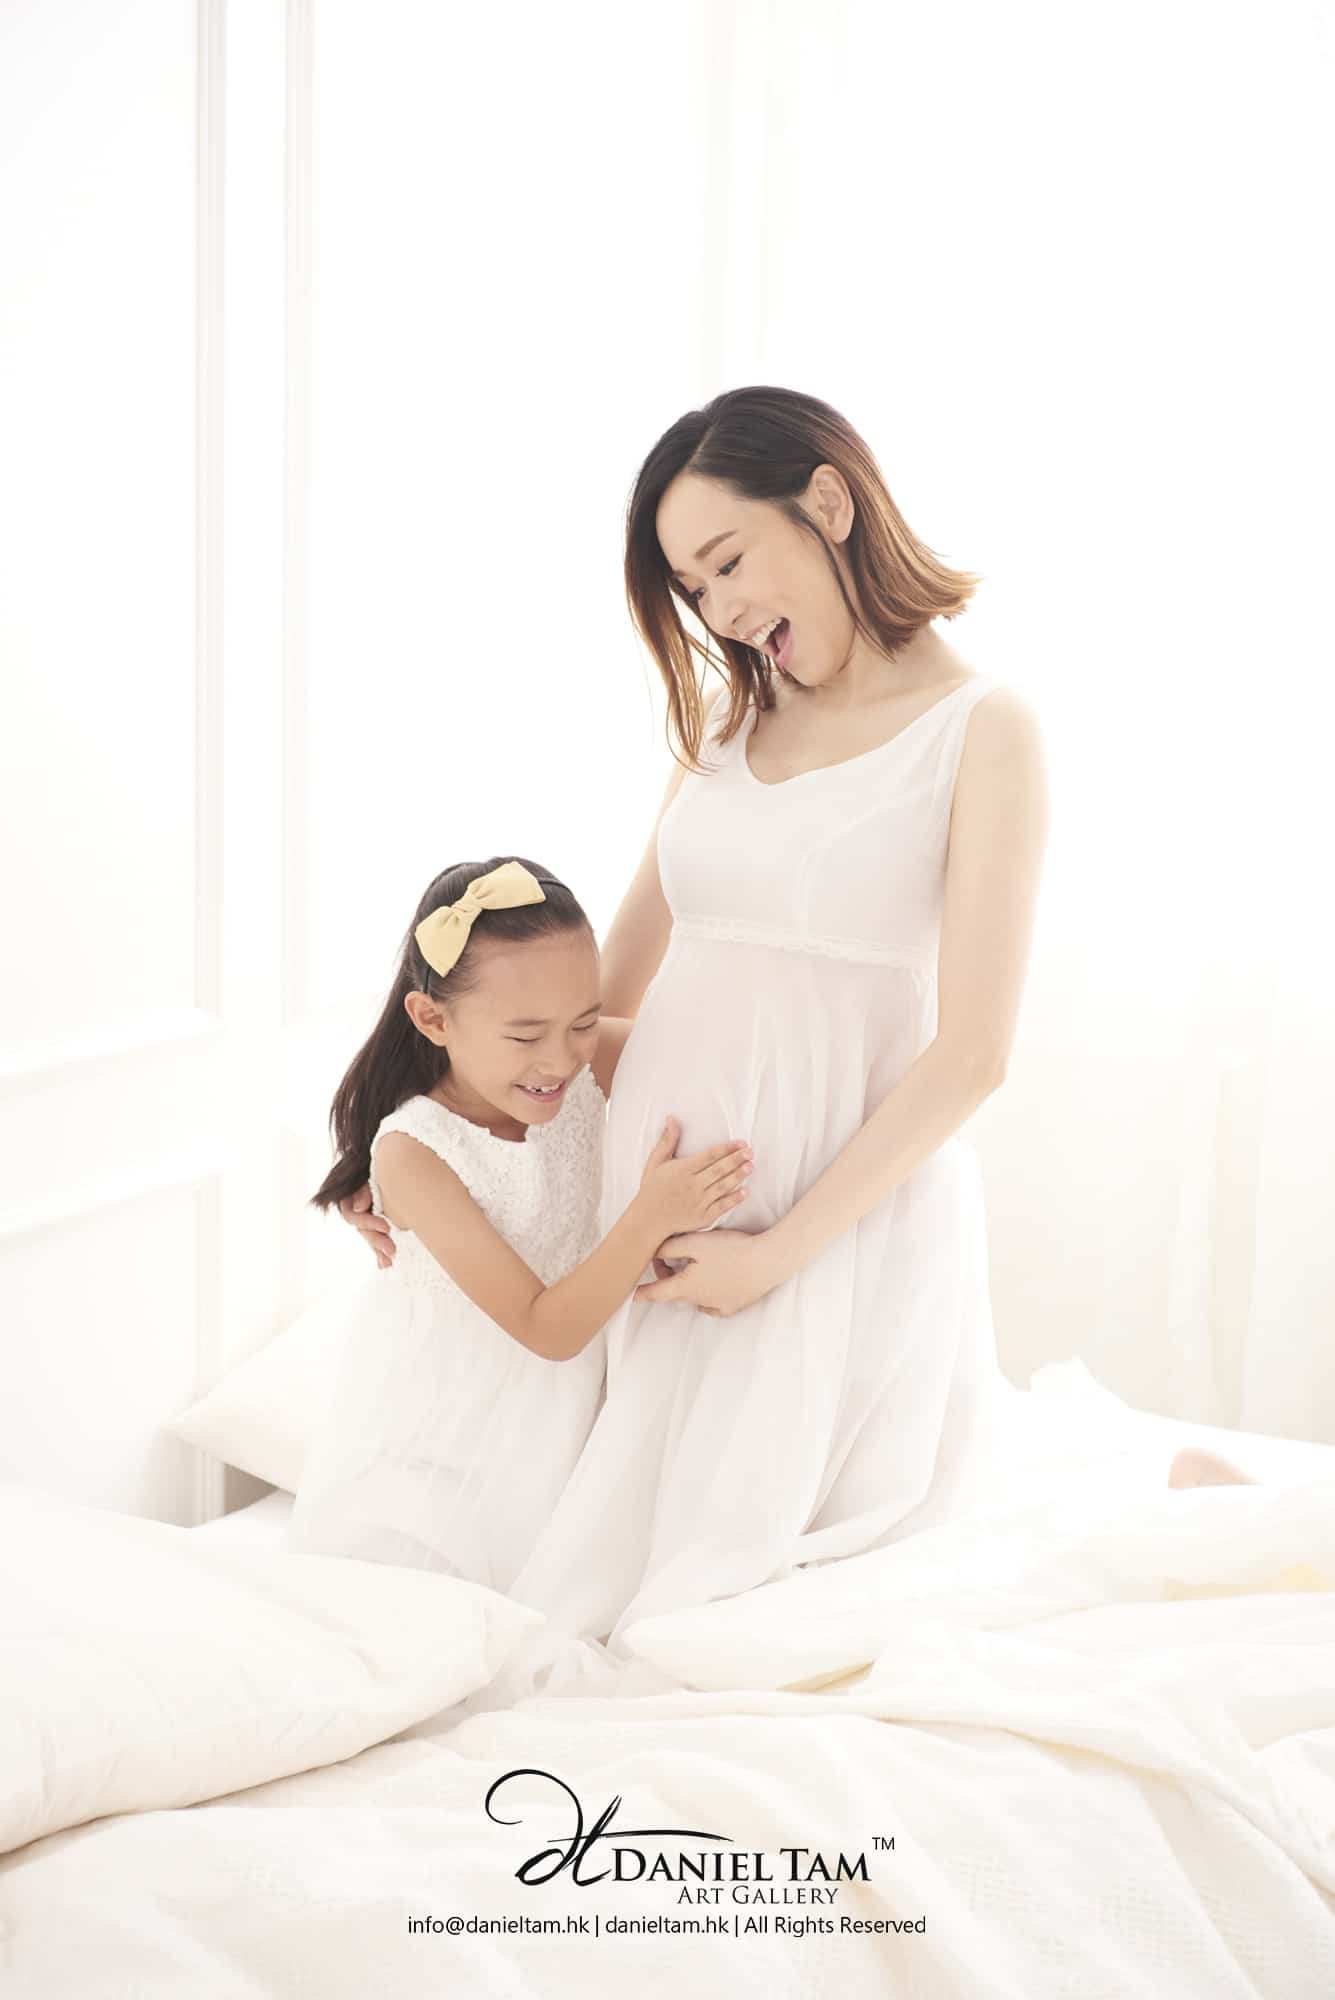 楊思琦 yeung sze kei pregnancy photo 004